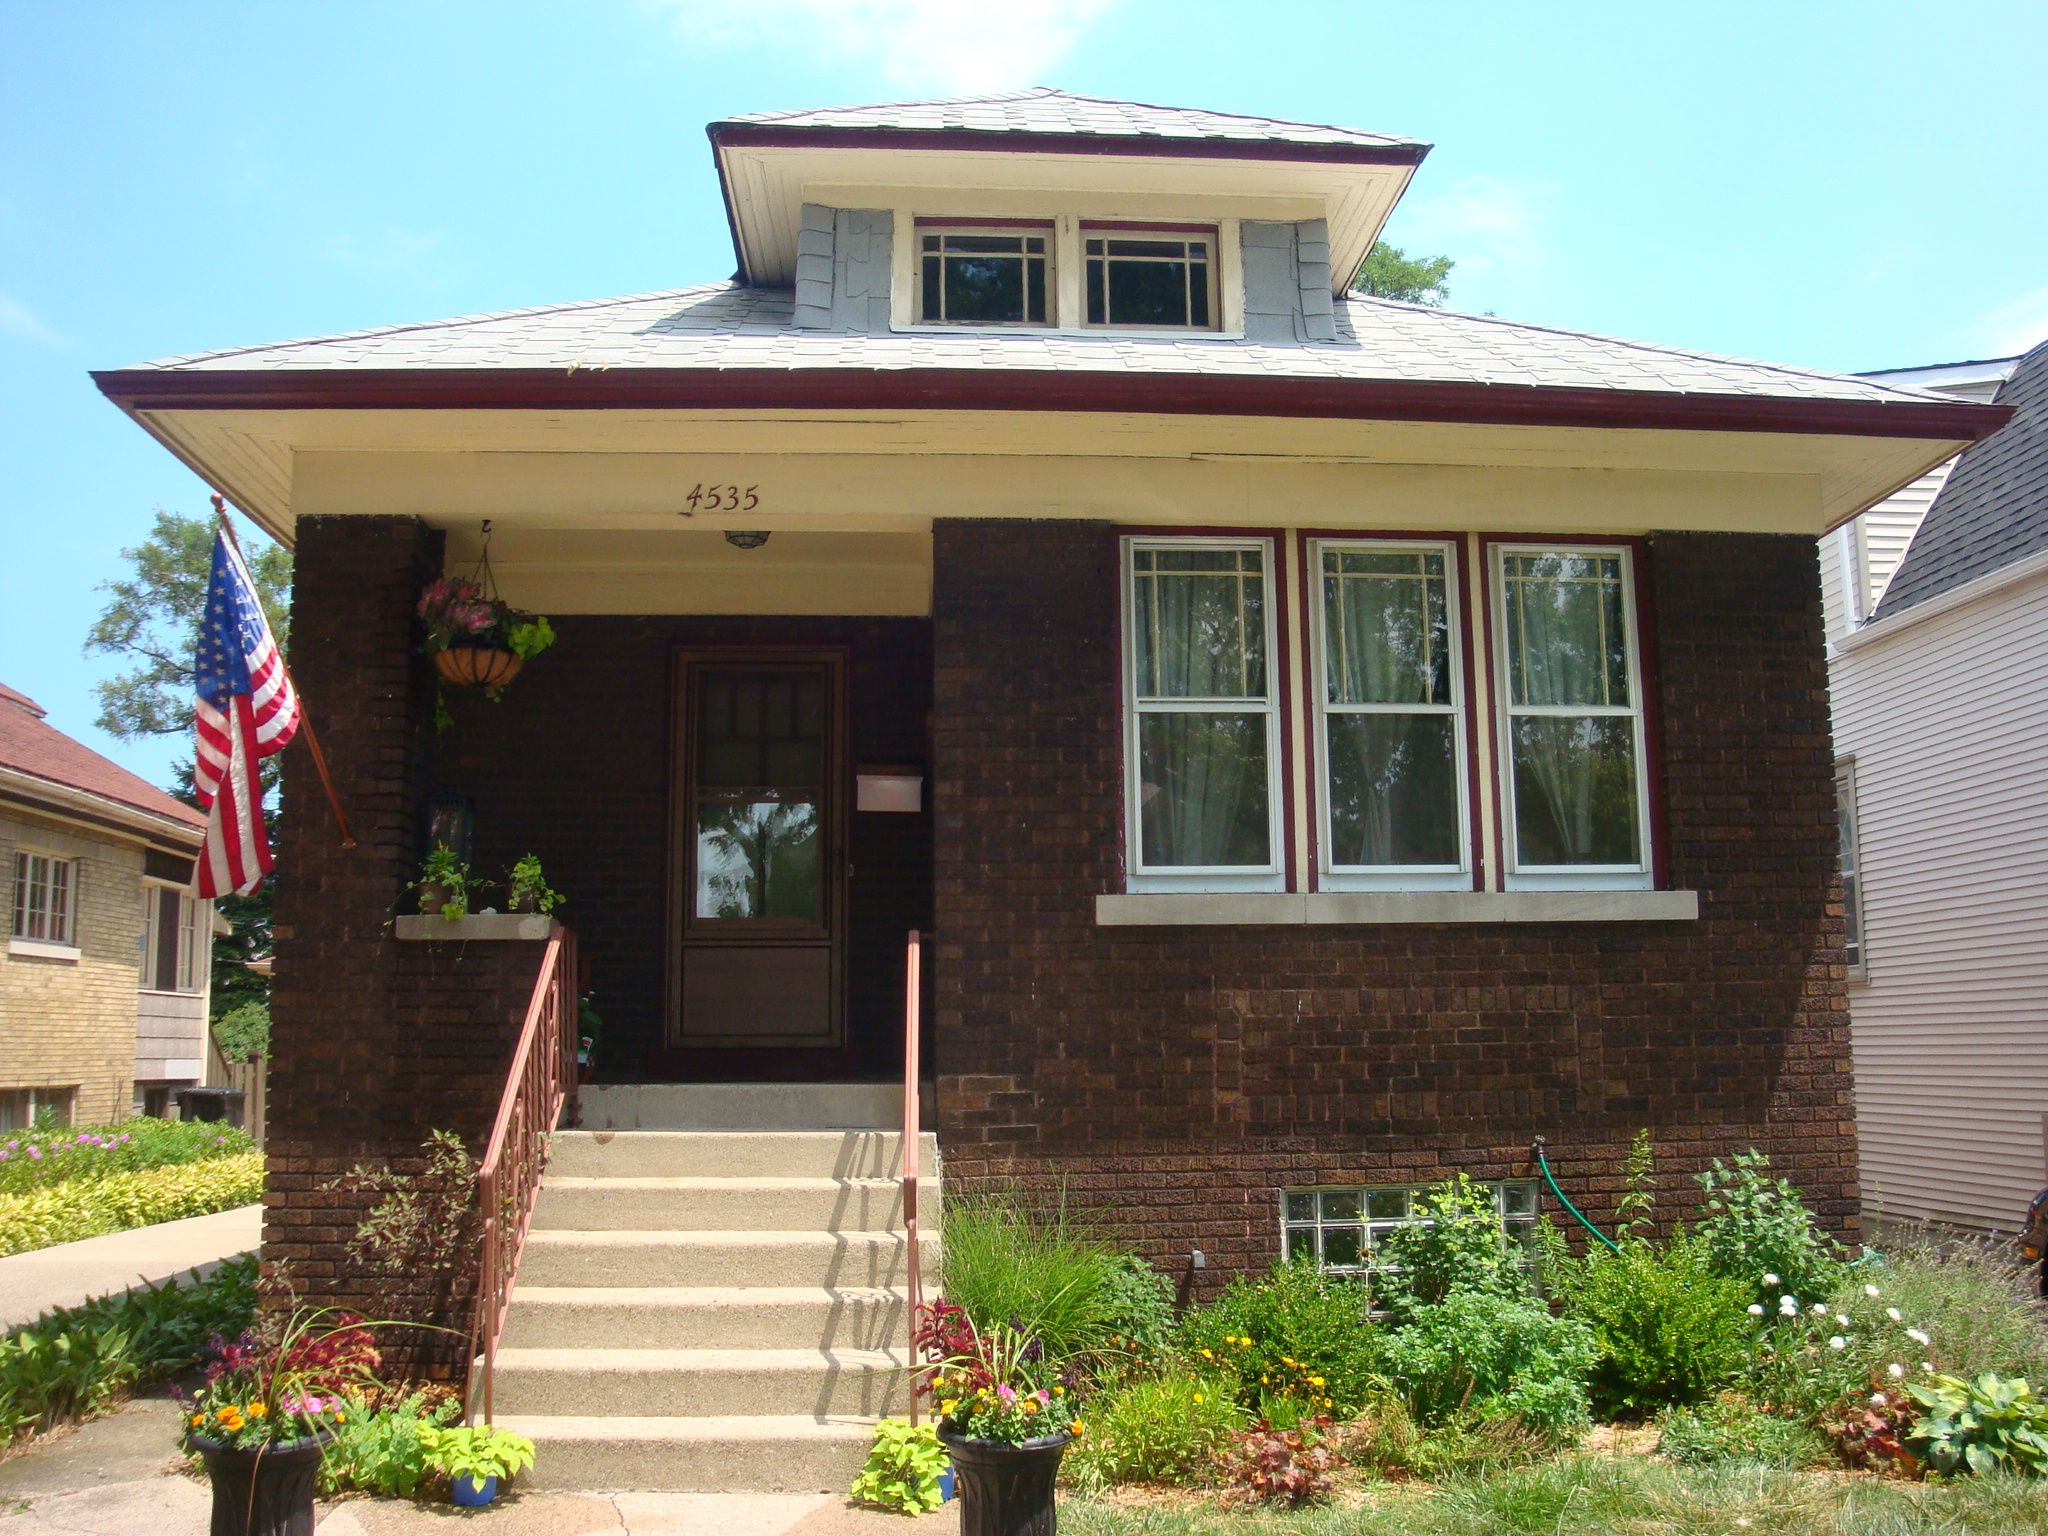 Chicago bungalow house ideas pinterest for Bungalow house chicago